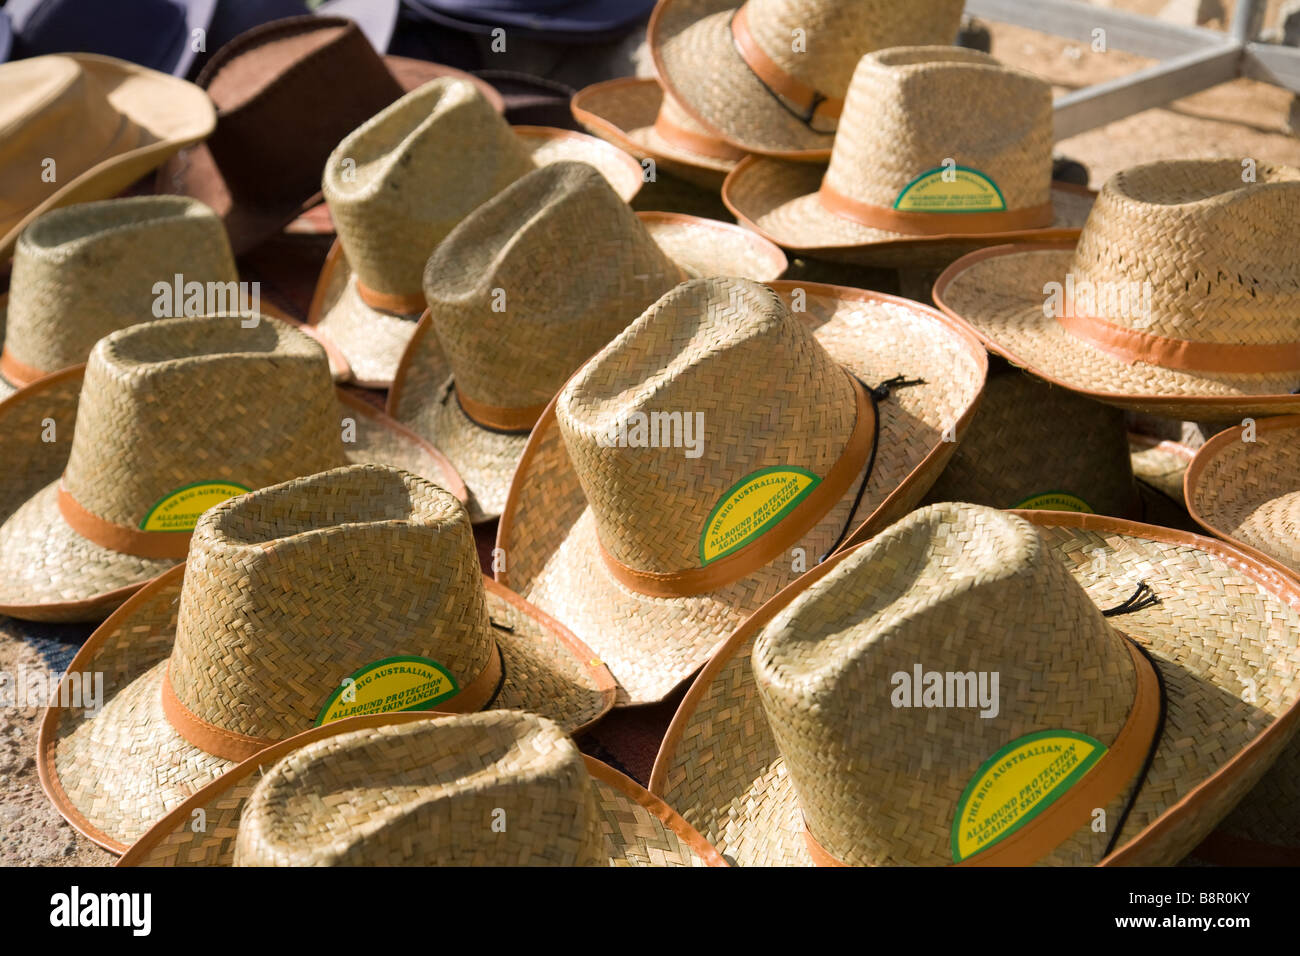 Sun protection hats for sale - Stock Image